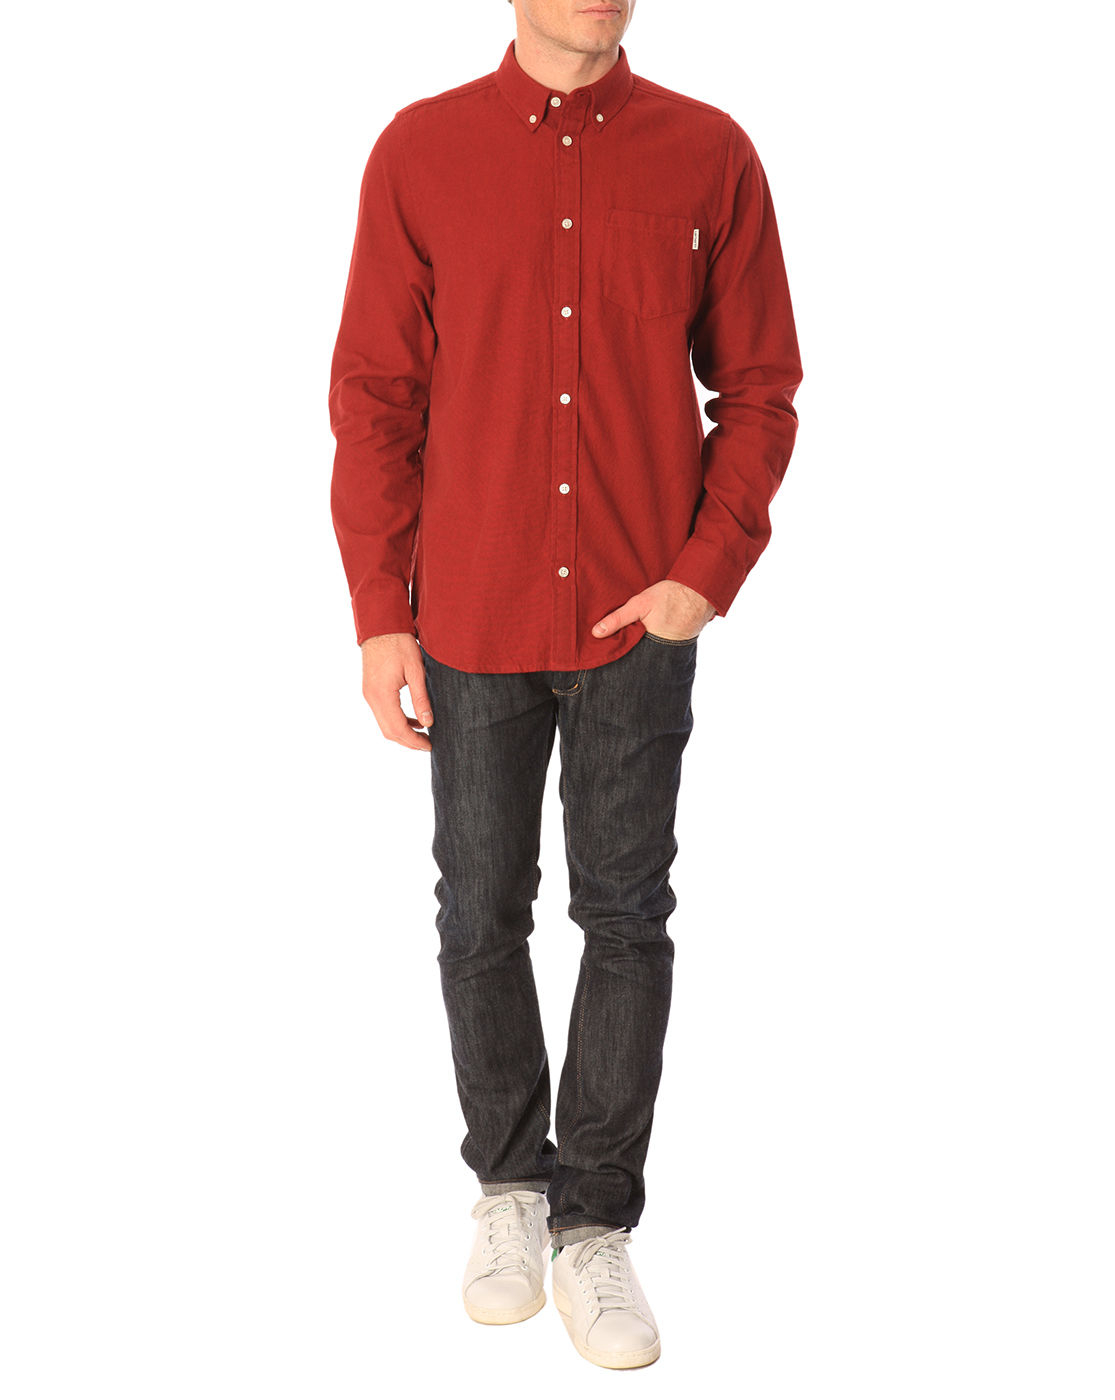 Carhartt dalton burgundy red flannel shirt in red for men for Carhartt burgundy t shirt